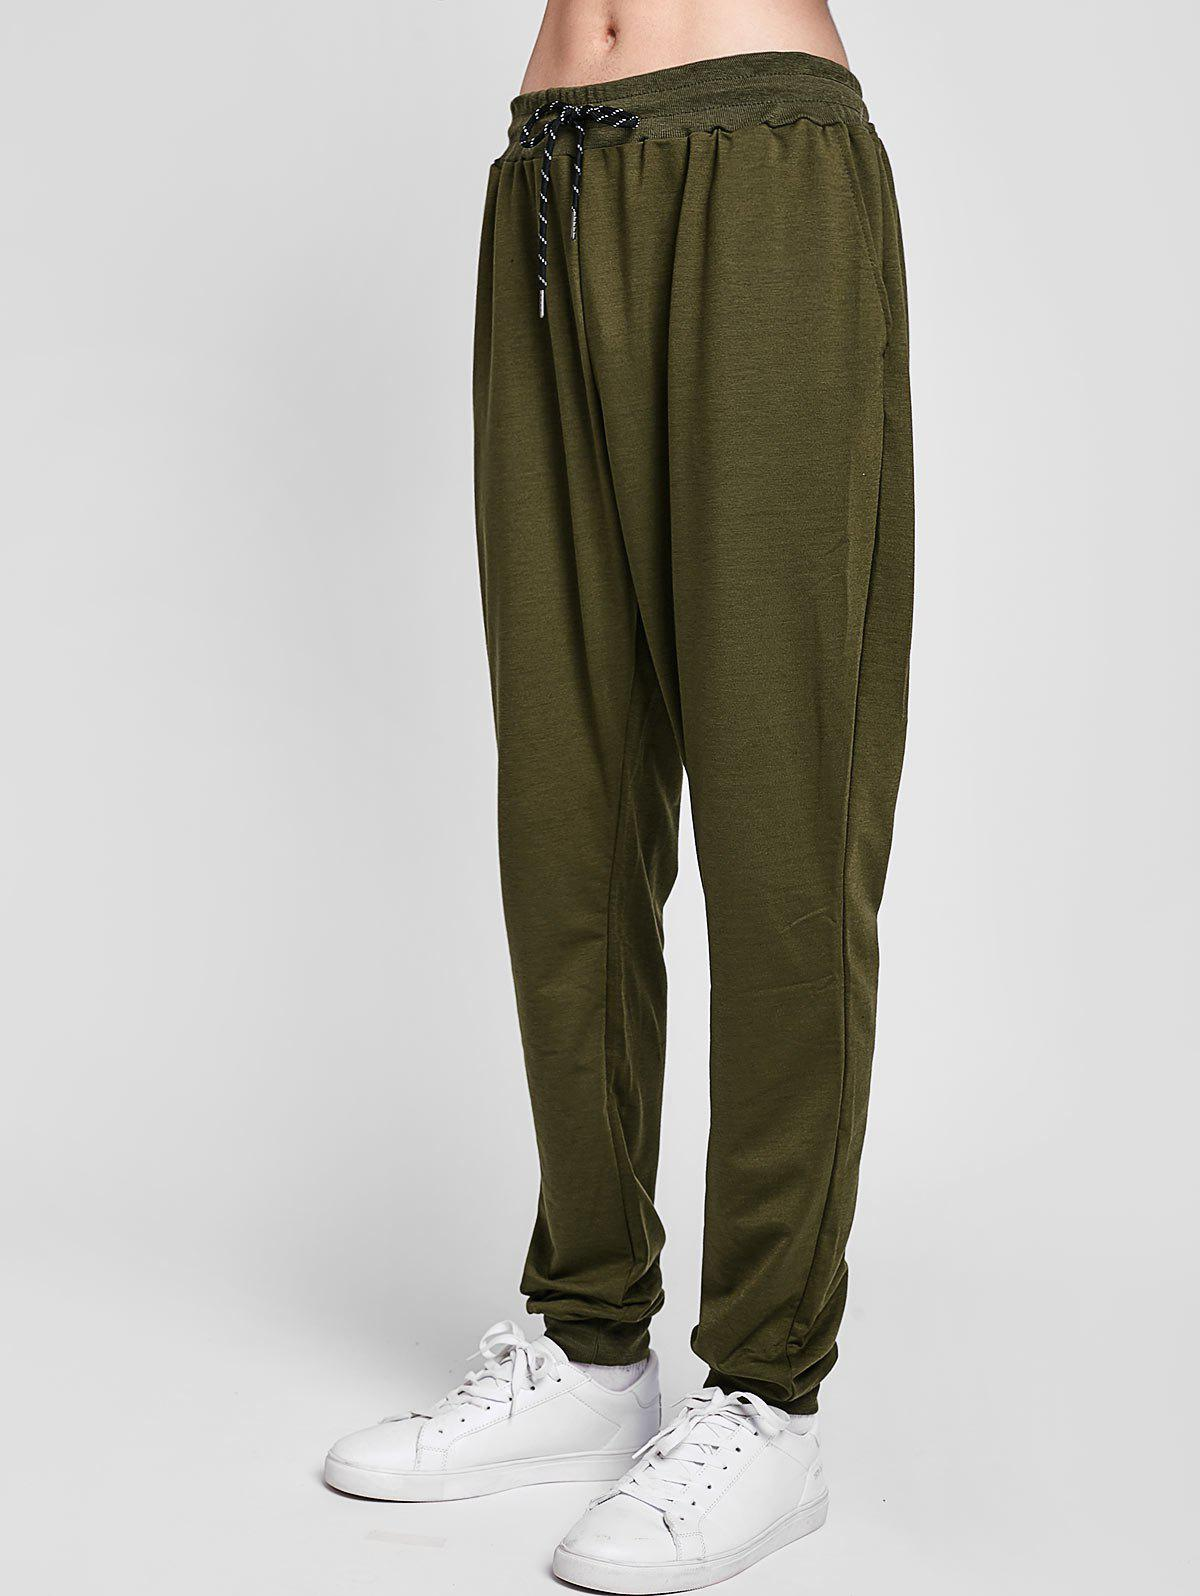 Solid Side Pockets Casual Jogger Pants - ARMY GREEN L